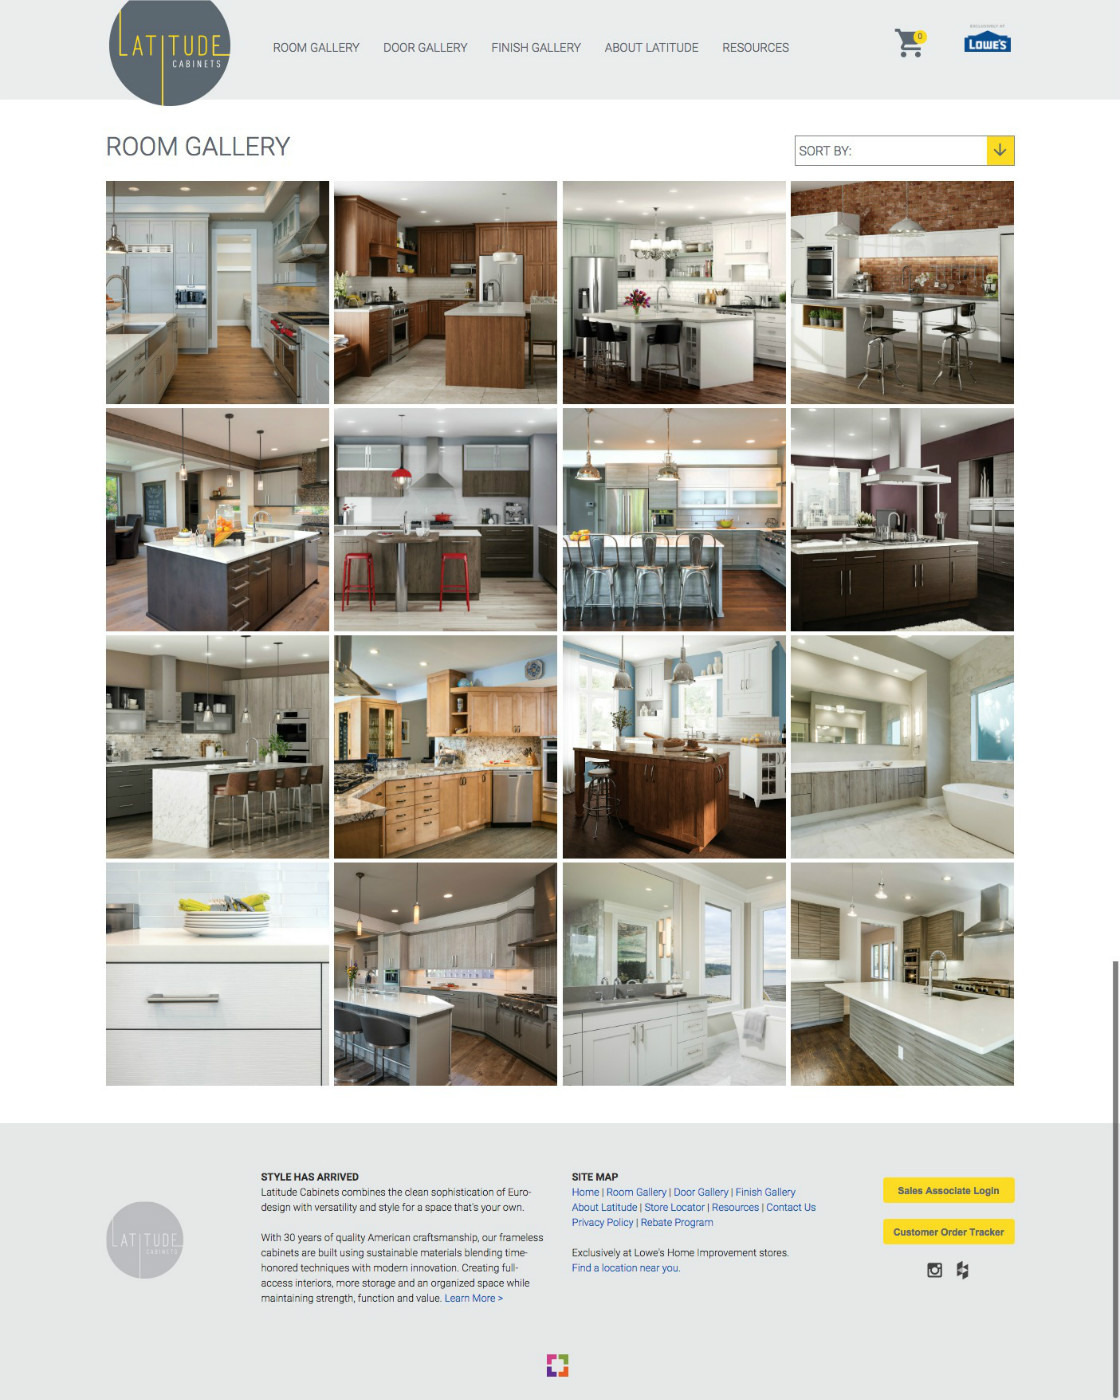 awards kitchen wall best latitude units door gallery kbculture surface cabinets acrylic cabinet panel prices treatment decoration modular